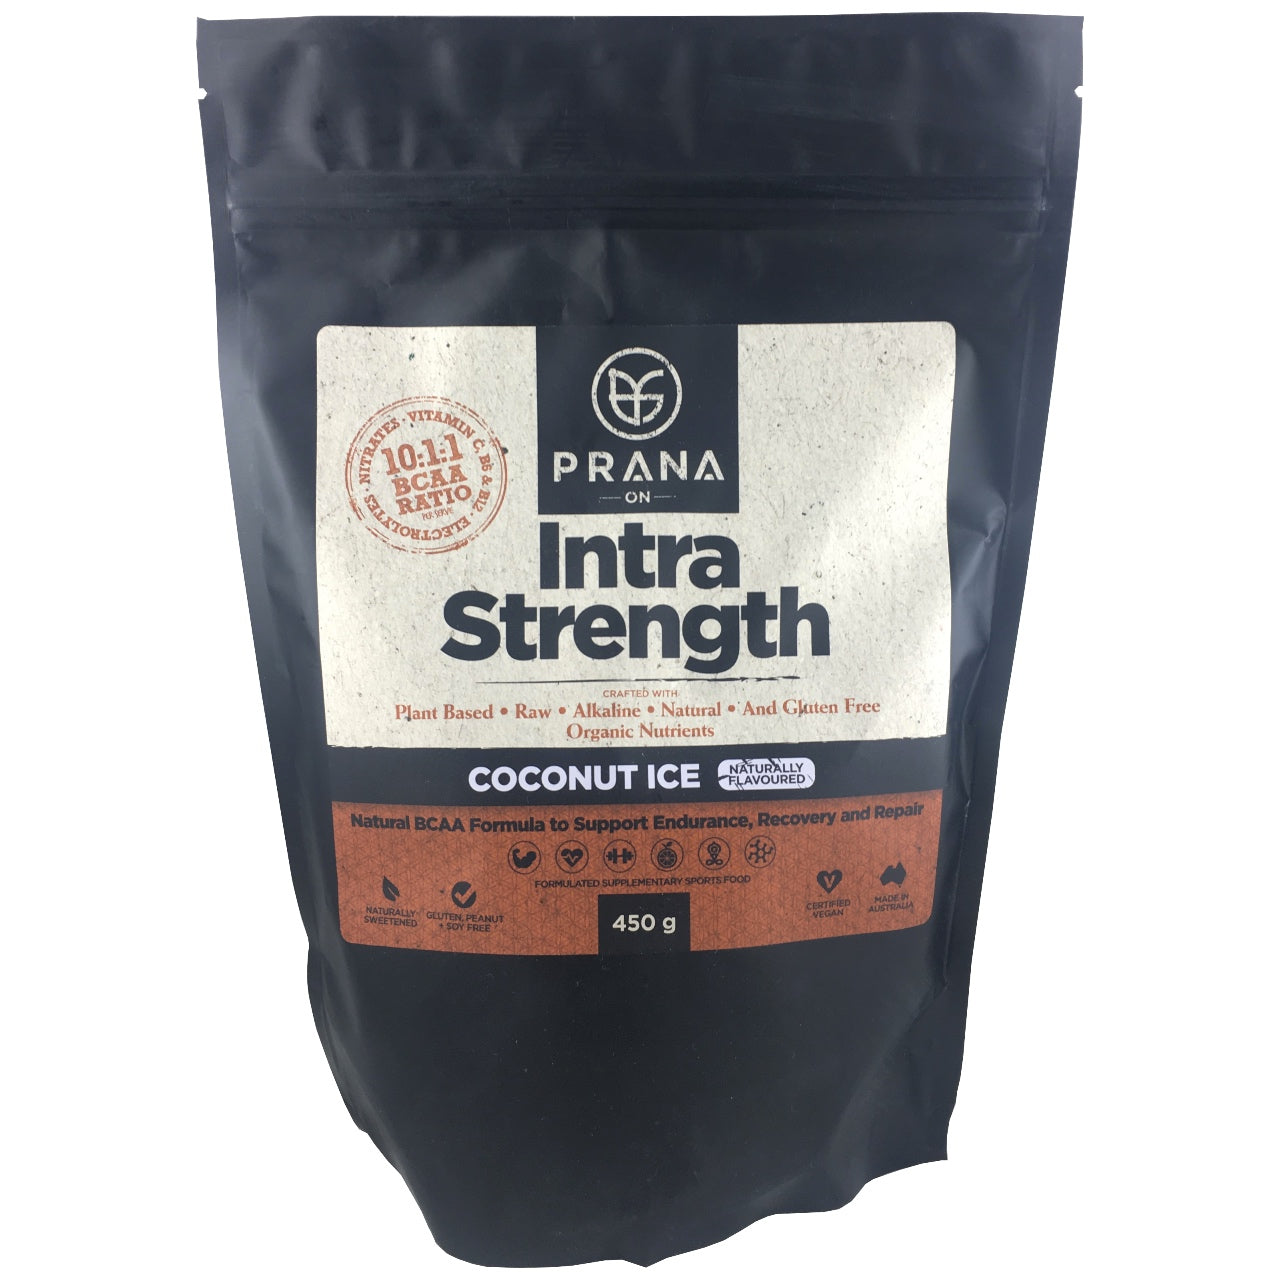 Prana Intra Strength - Coconut Ice